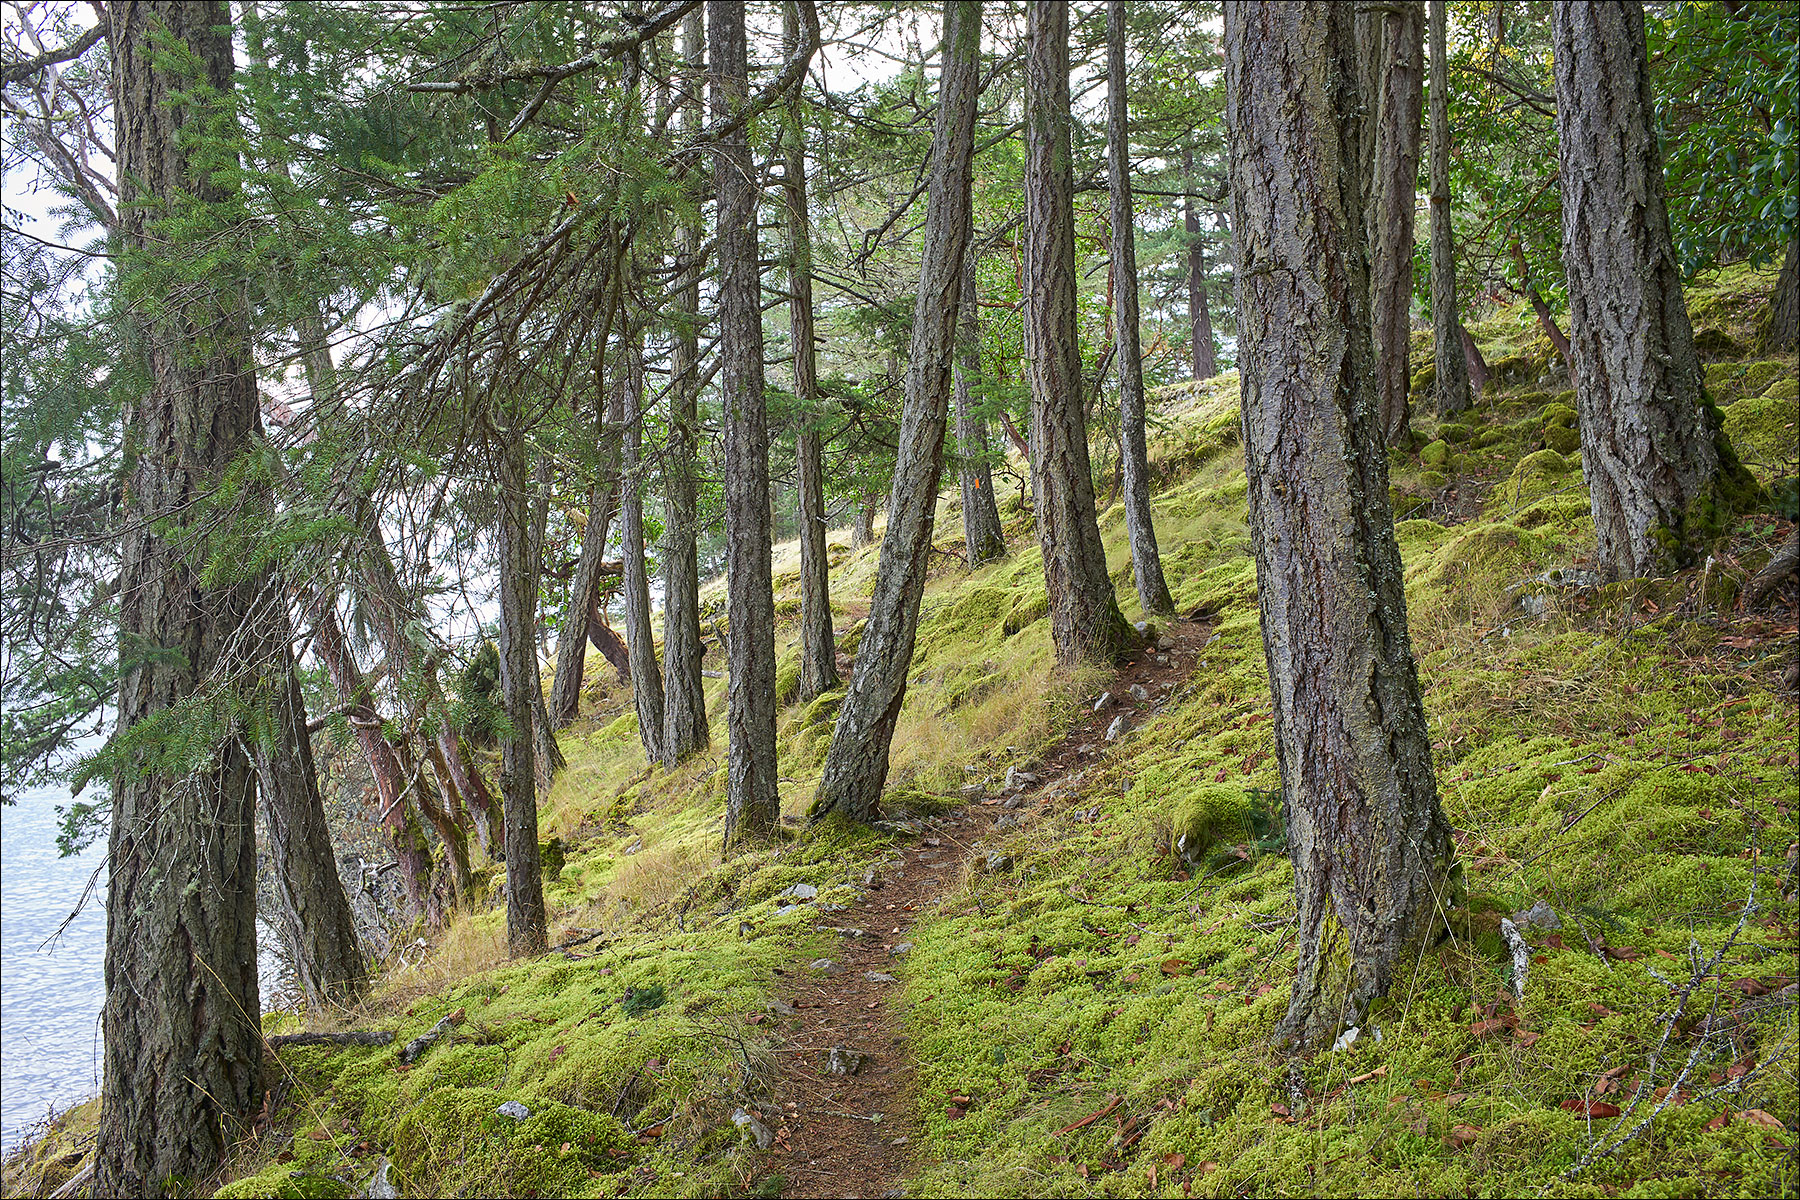 Hiking from Yeo Point to Kings Cove area ©johncameron.ca